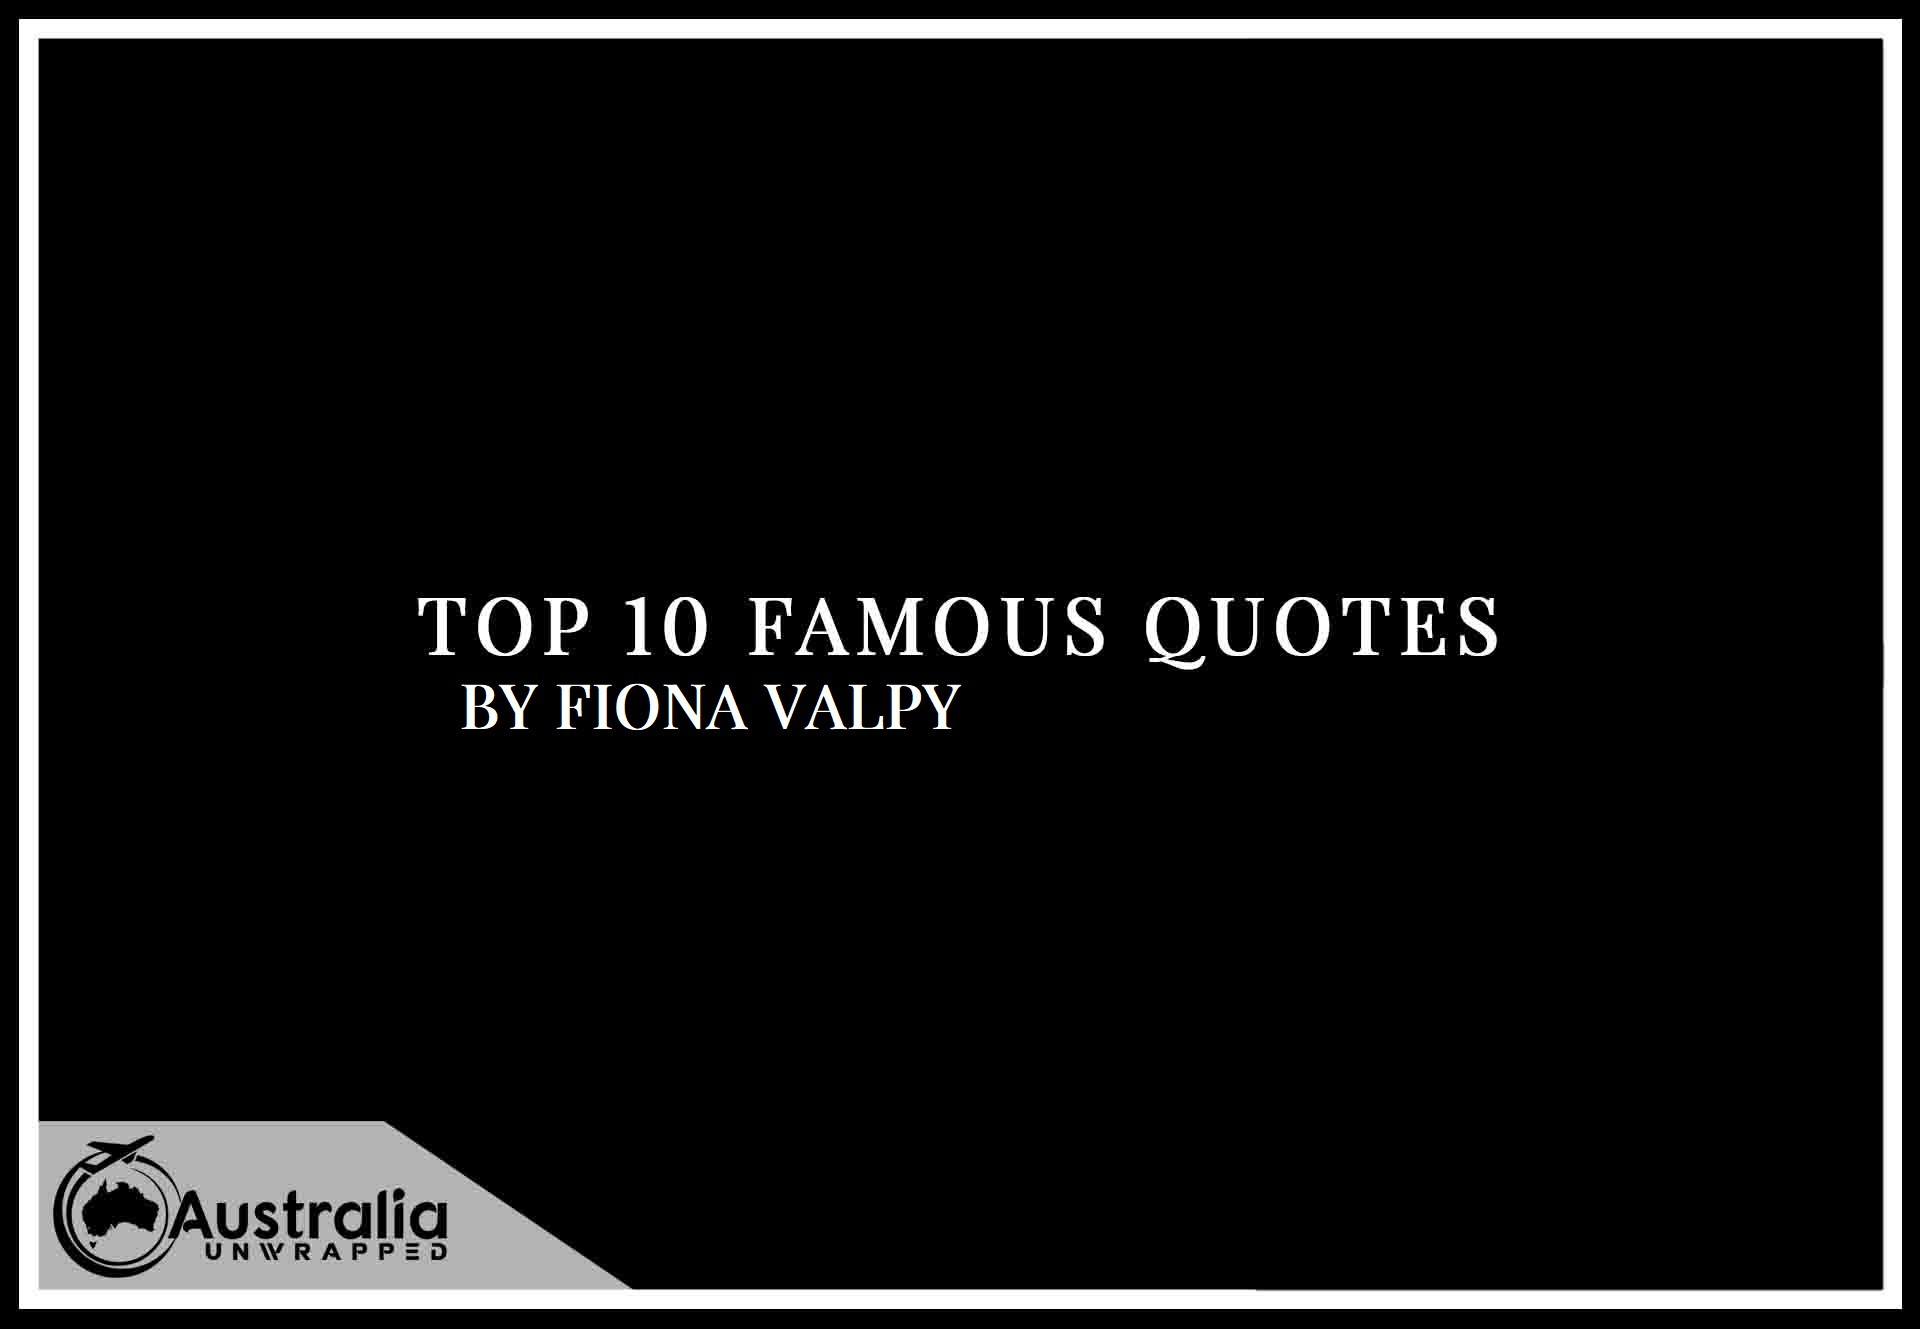 Top 10 Famous Quotes by Author Fiona Valpy